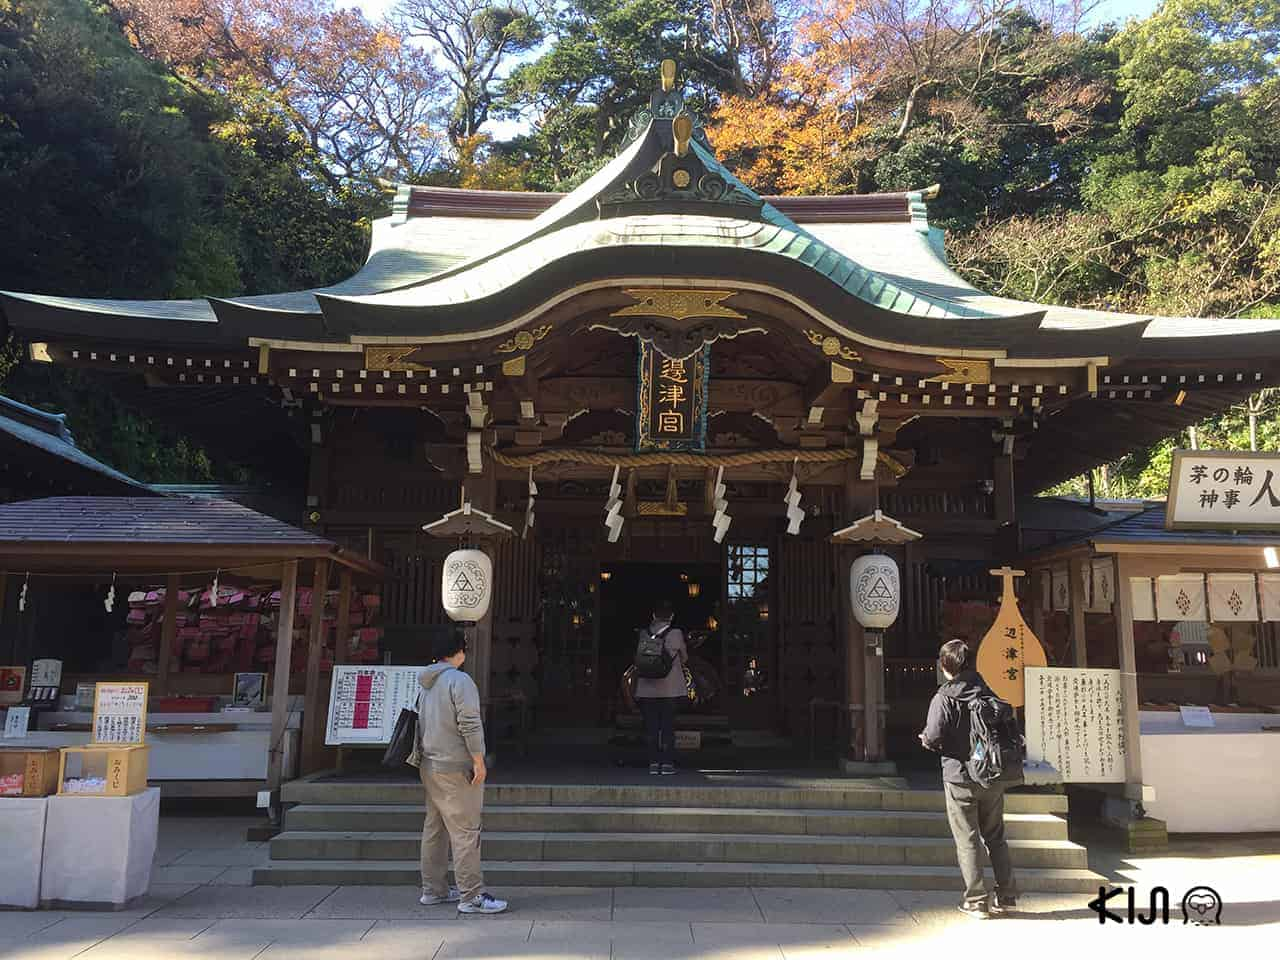 Enoshima-Kamakura Free Pass : Enoshima Shrine